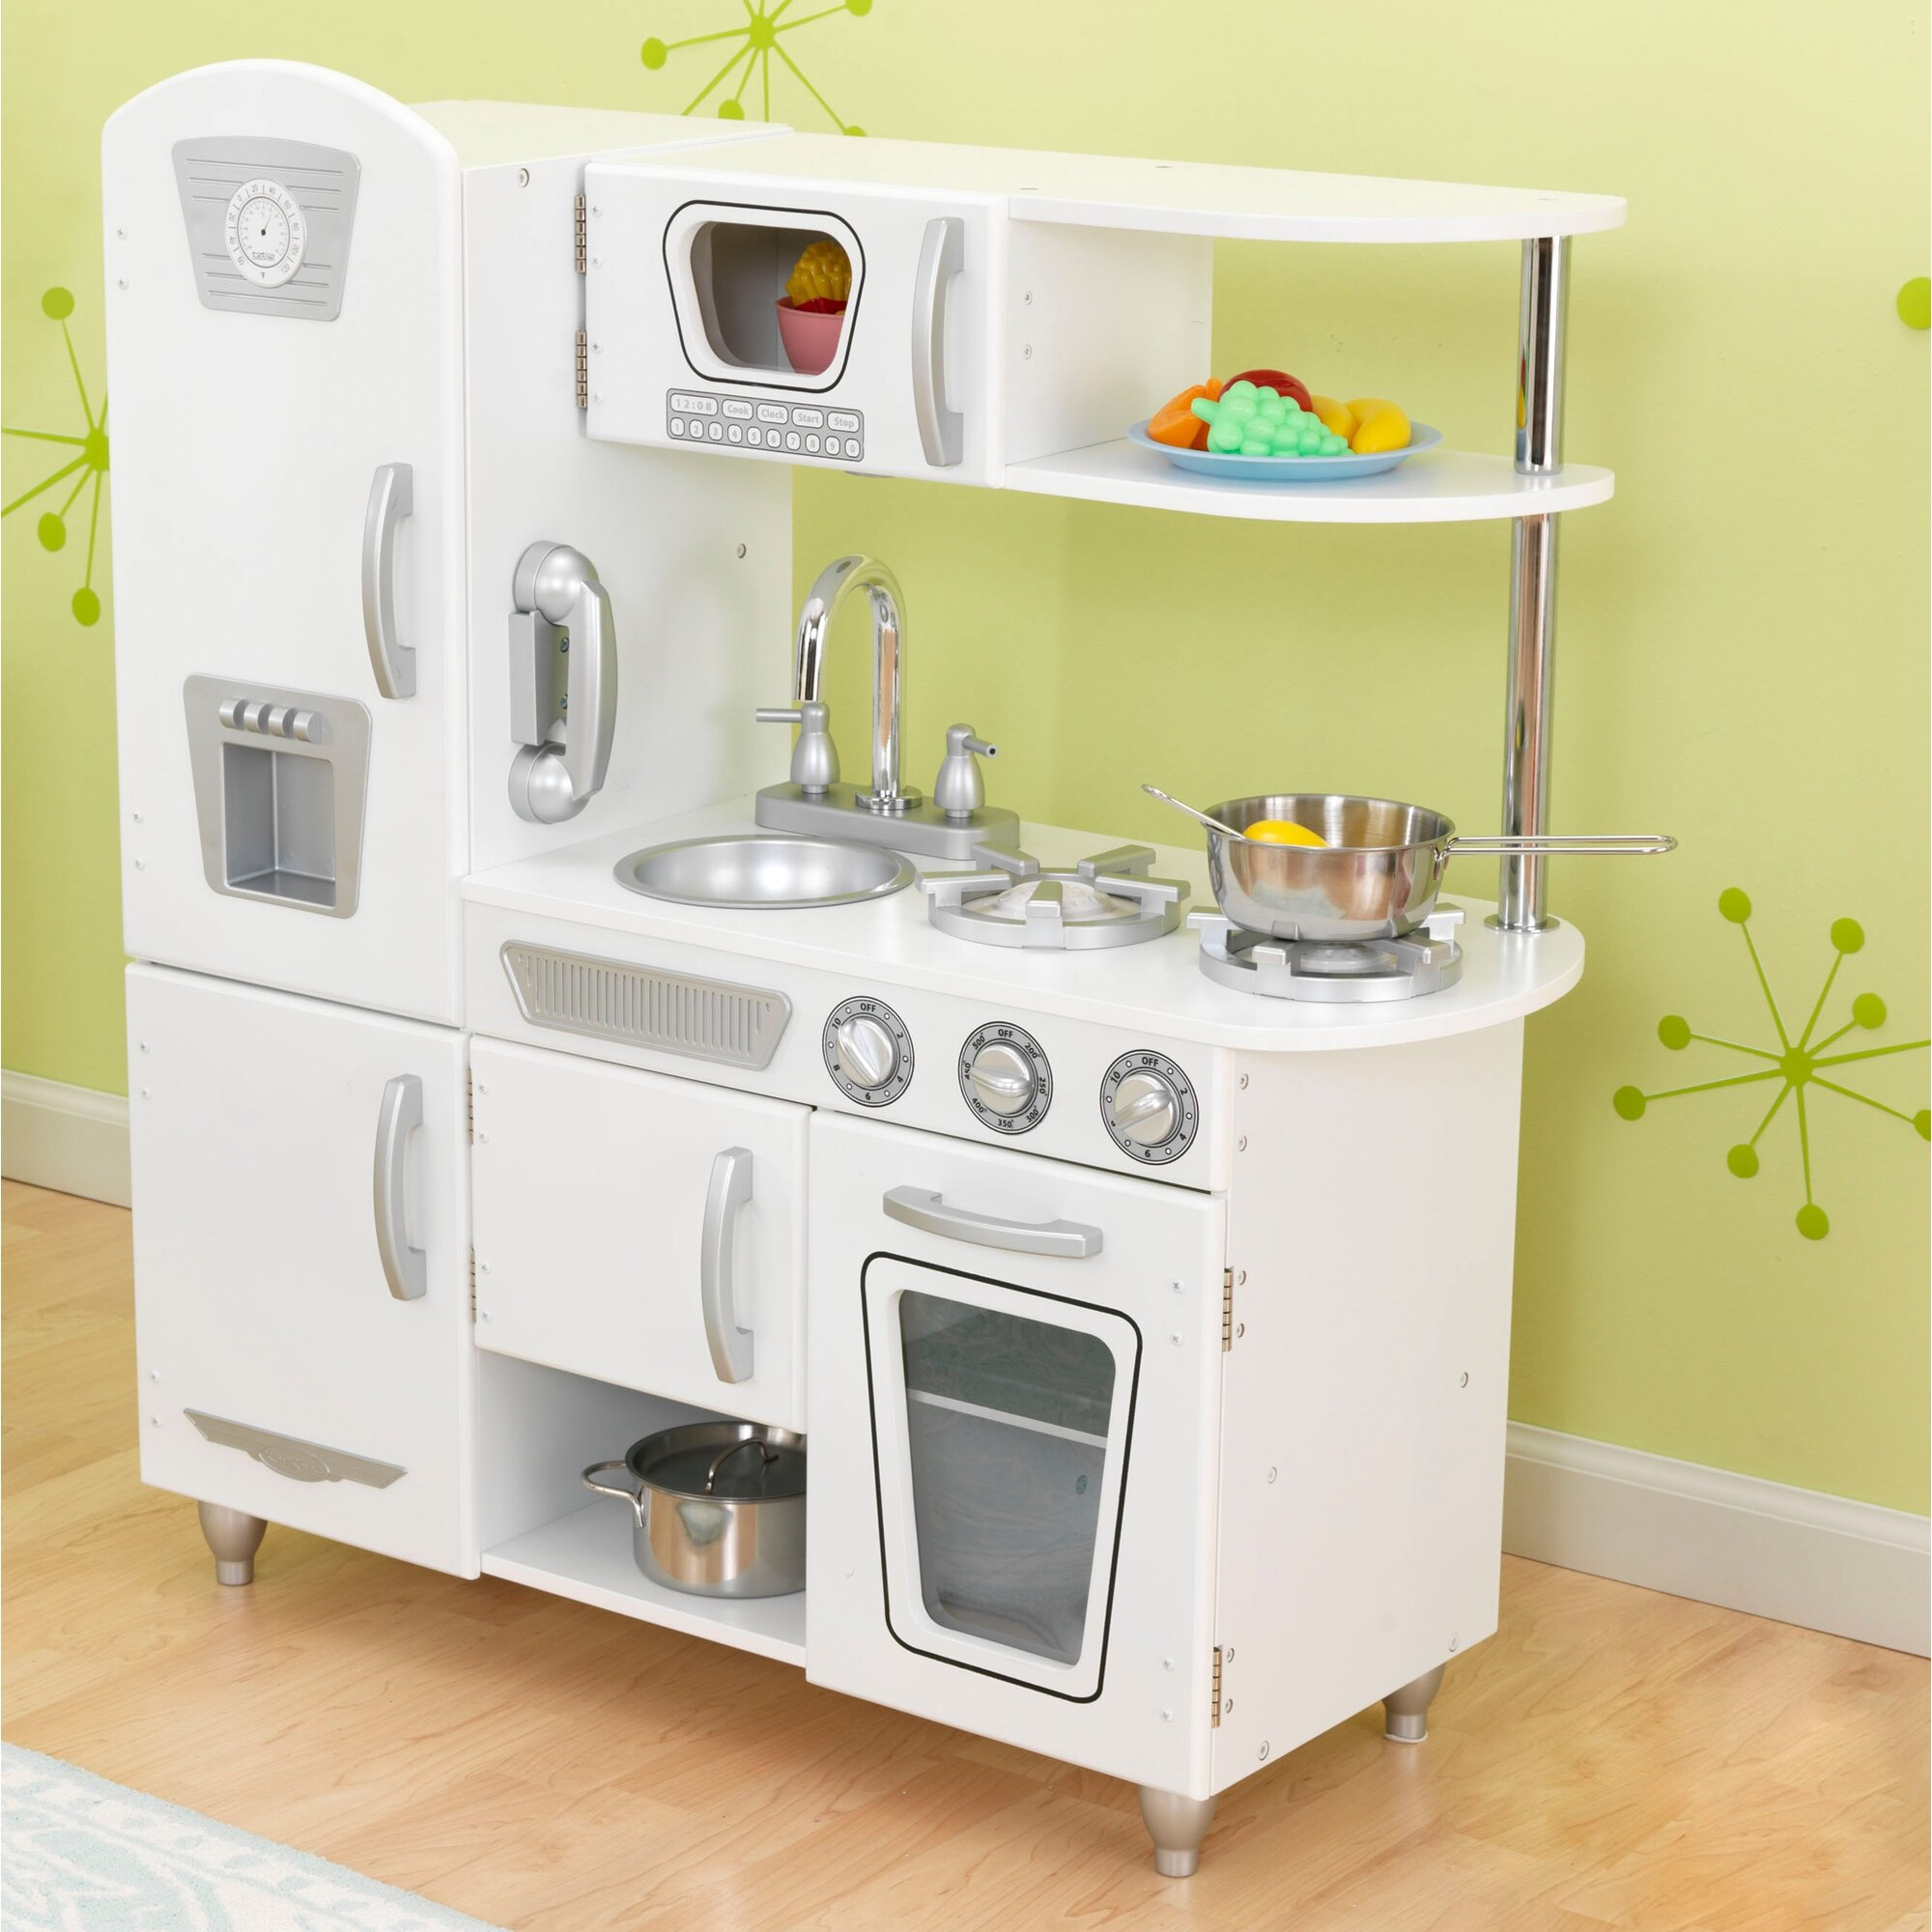 Play Kitchen SetsAccessories Youll LoveWayfair